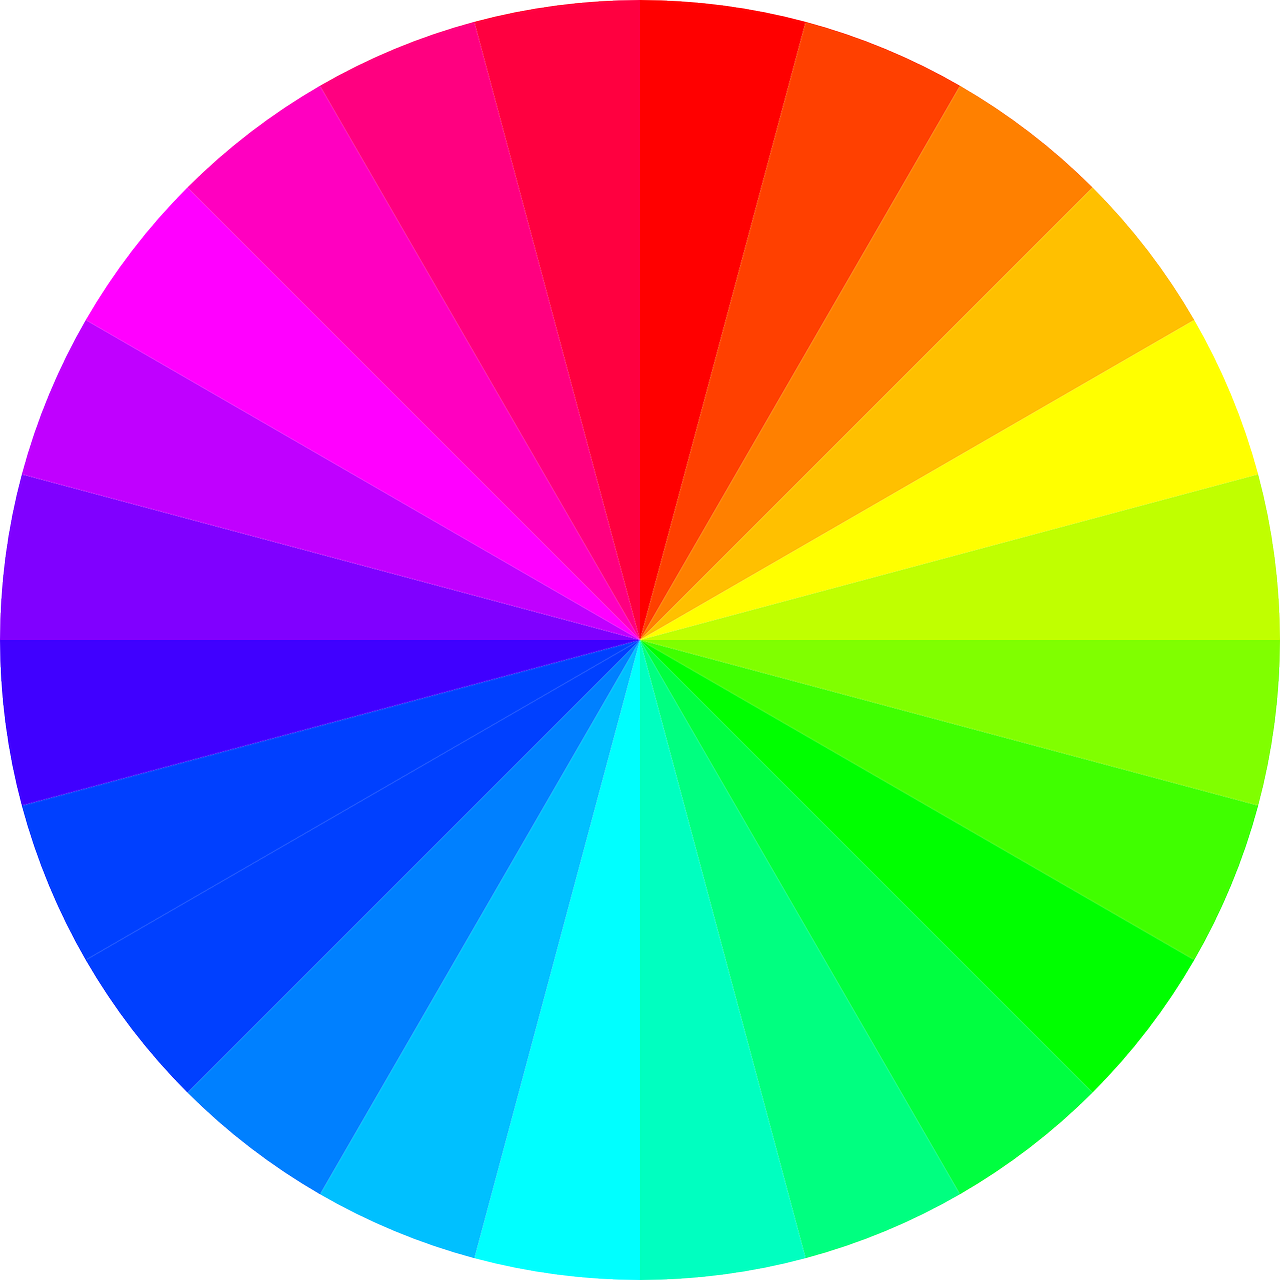 Download Free Photo Of Rainbow Colors Circle Color Spectrum Colors Round From Needpix Com